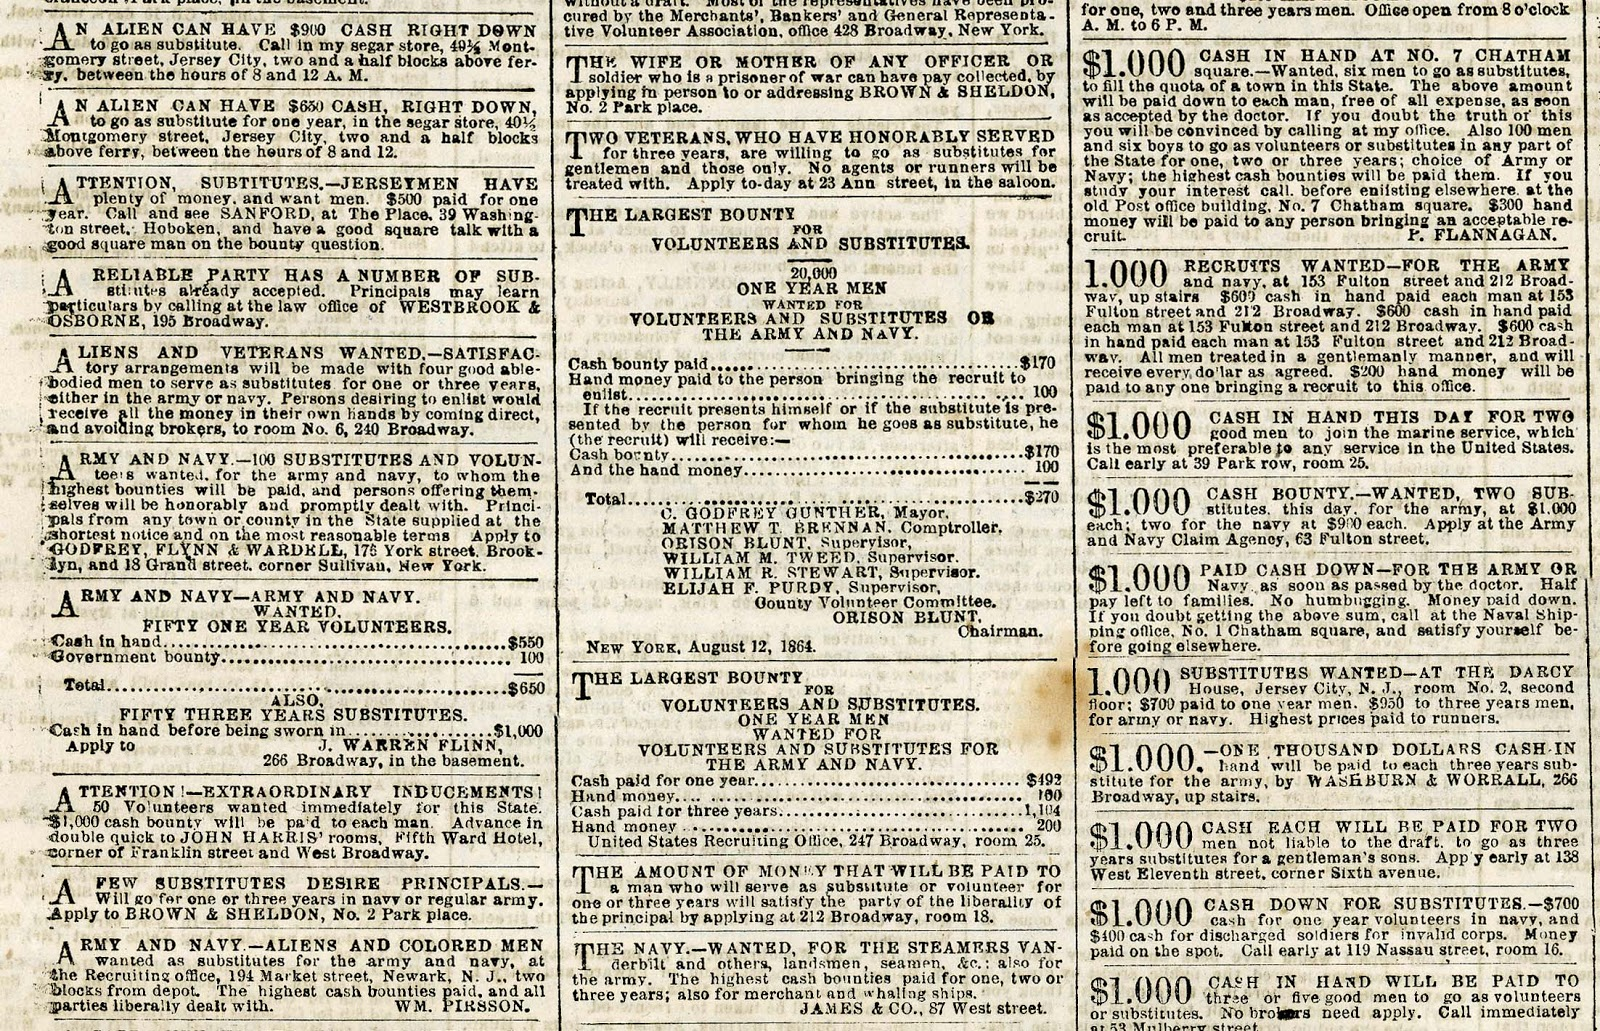 herald personals Free and paid personals classified ads of the lethbridge herald classifieds browse personals classified ads and free ads post free personals classified ads.